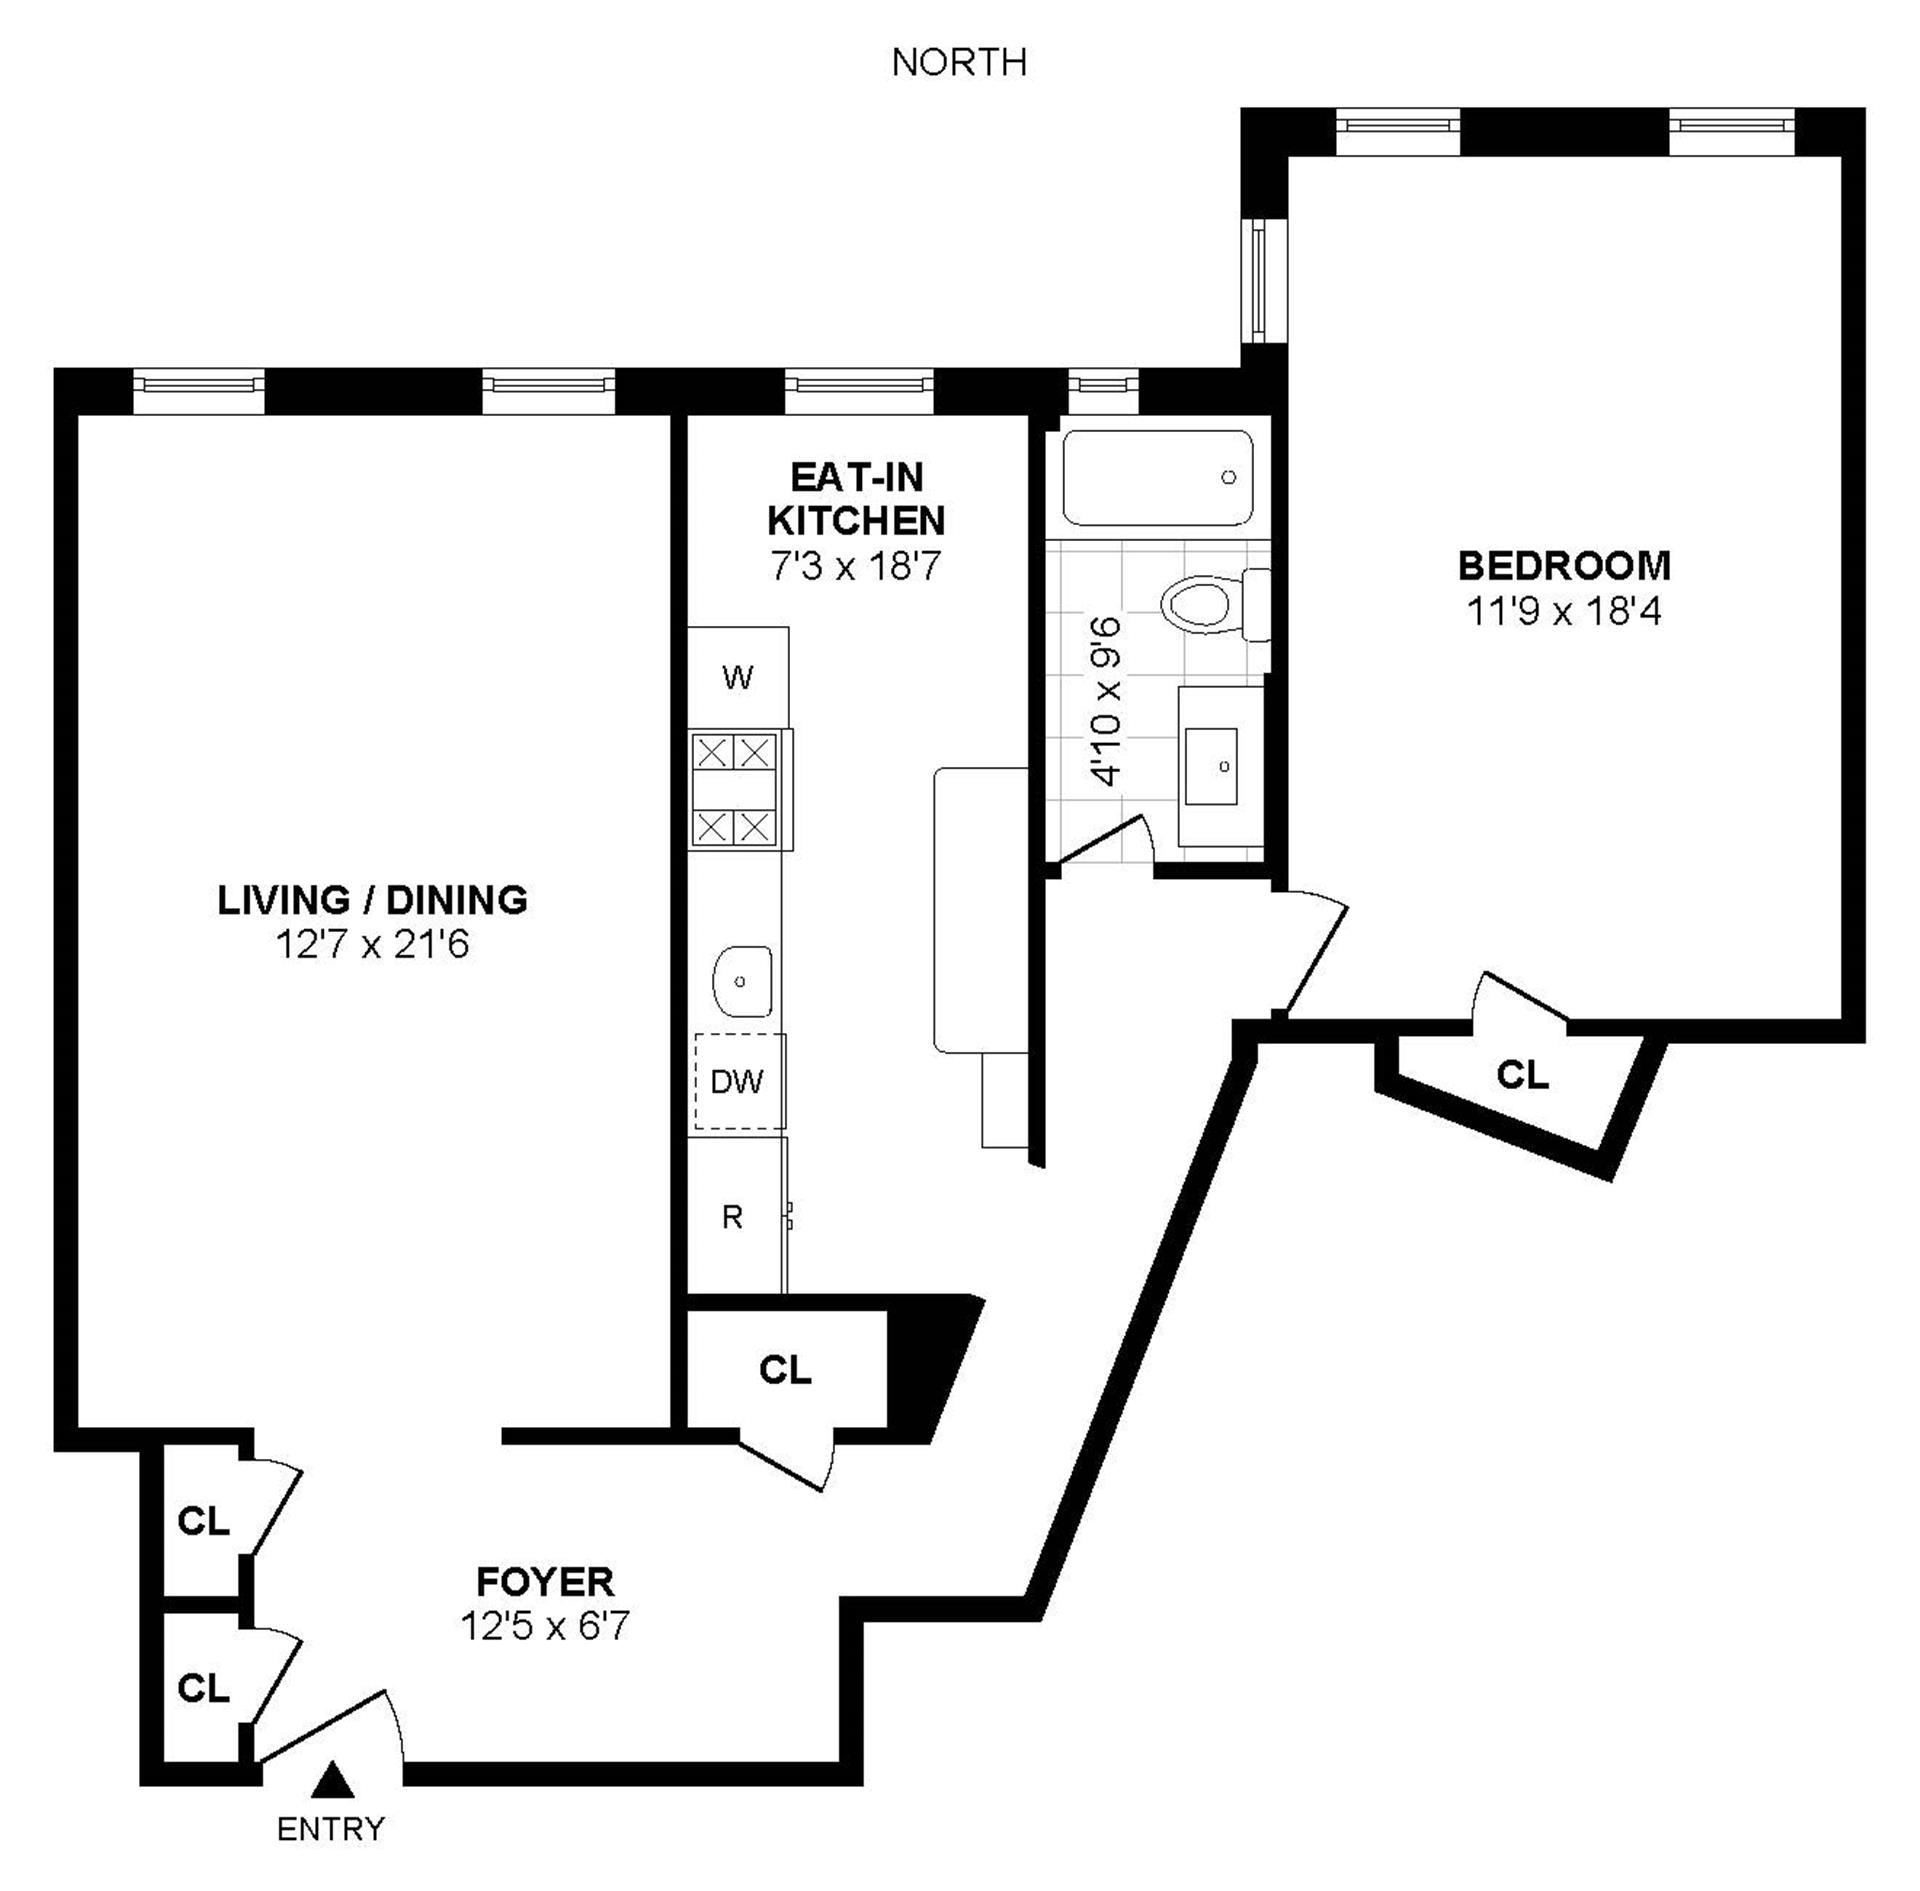 Floor plan of 81 Ocean Pkwy, 1M - Windsor Terrace, New York